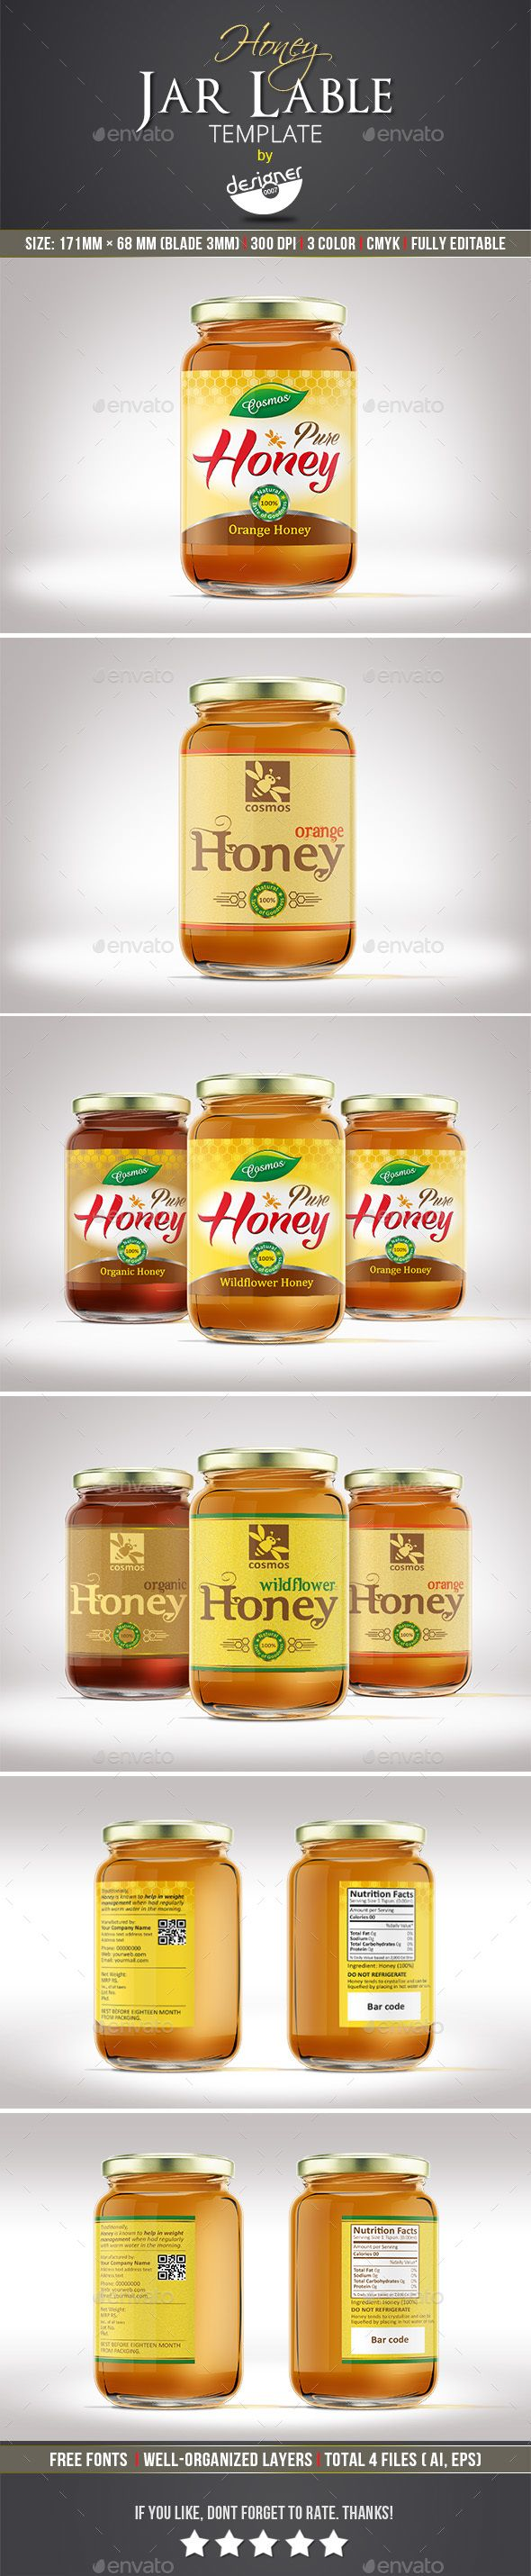 Honey Jar Label Design Template - Packaging Design Templates Vector EPS, AI Illustrator. Download here: https://graphicriver.net/item/honey-jar-label-template/16993628?s_rank=48&ref=yinkira